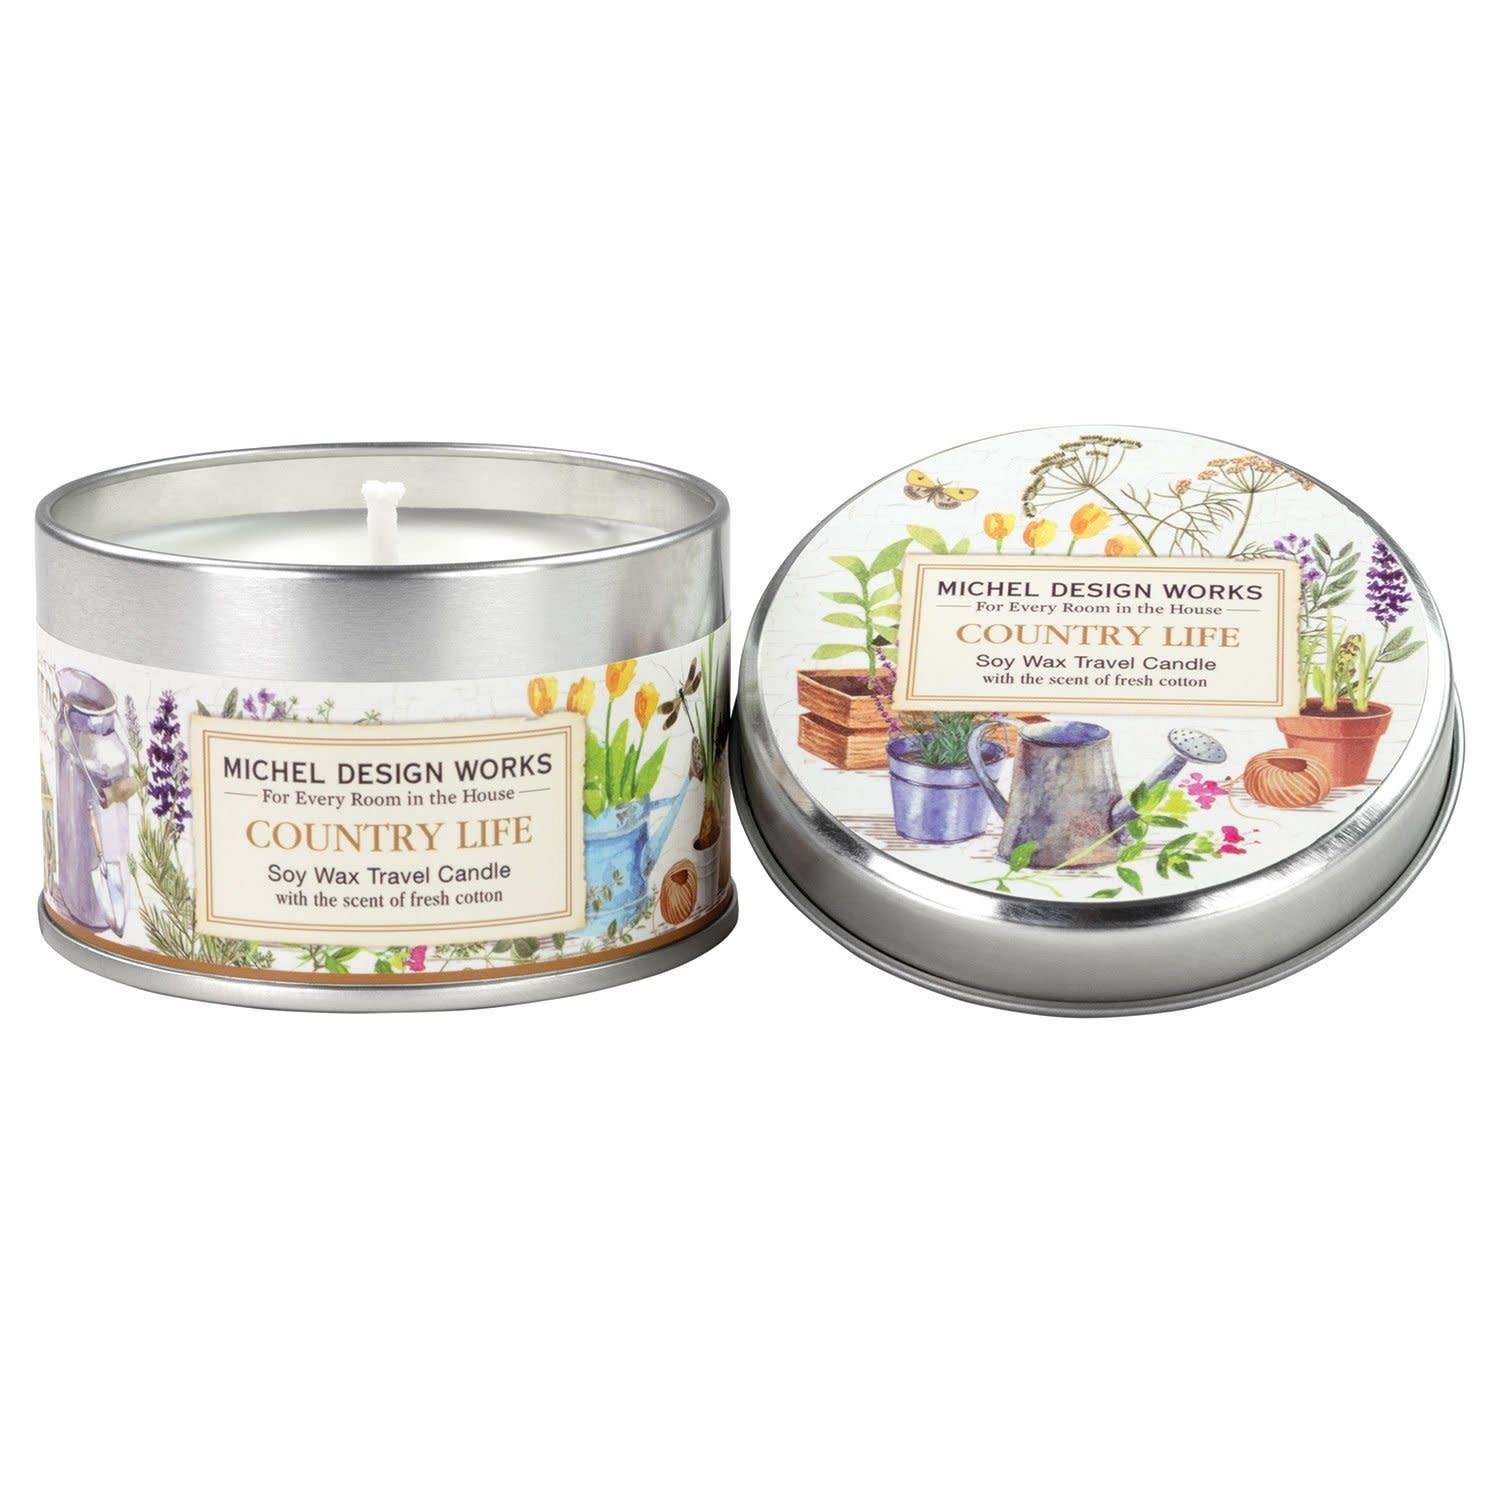 Michel Design Works Country Life Travel Candle